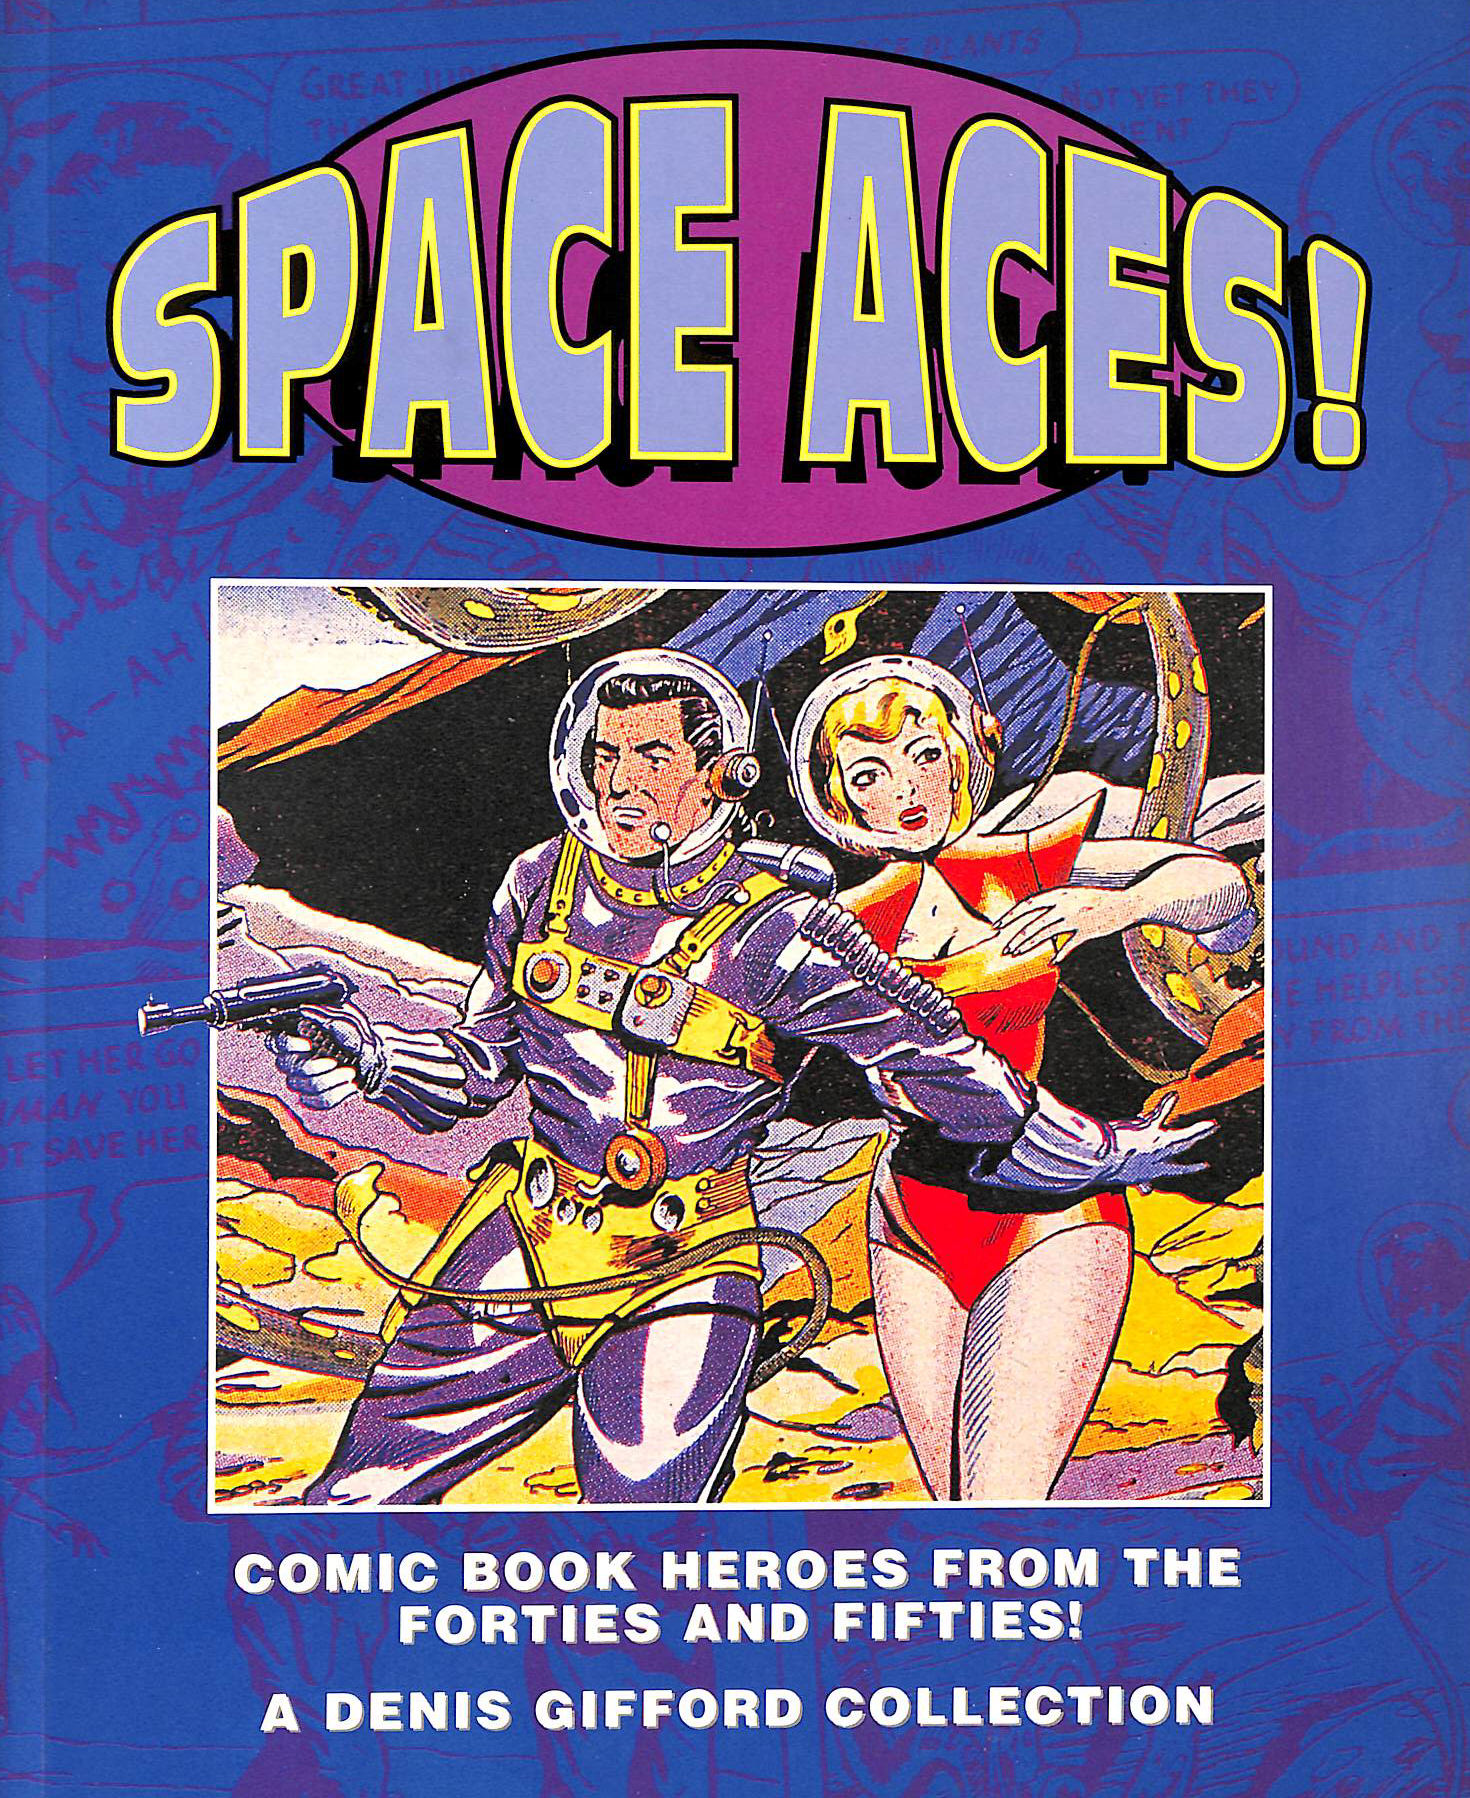 Image for Space Aces!: Comic Book Heroes of the Forties and Fifties